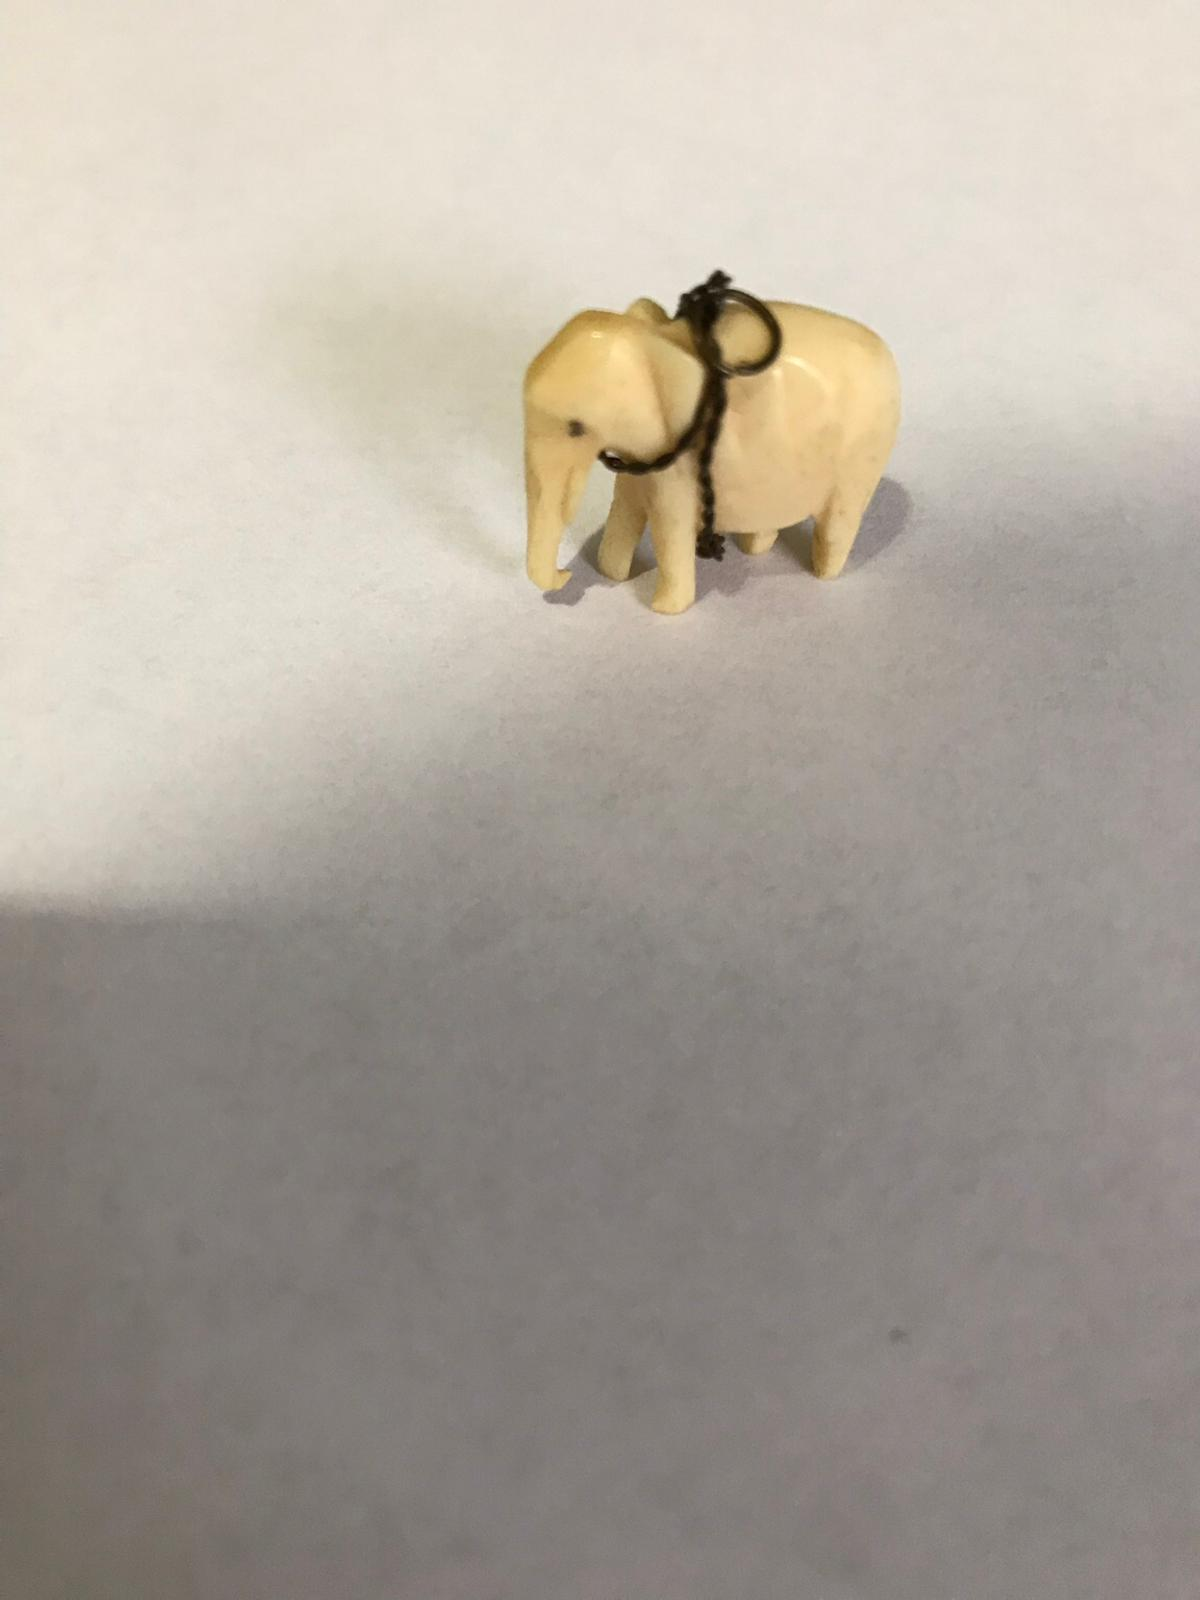 Unique hand made elephant pendant with ivory , pls look at the attached pictures for more details can accept PayPal,collections or delivery if close by